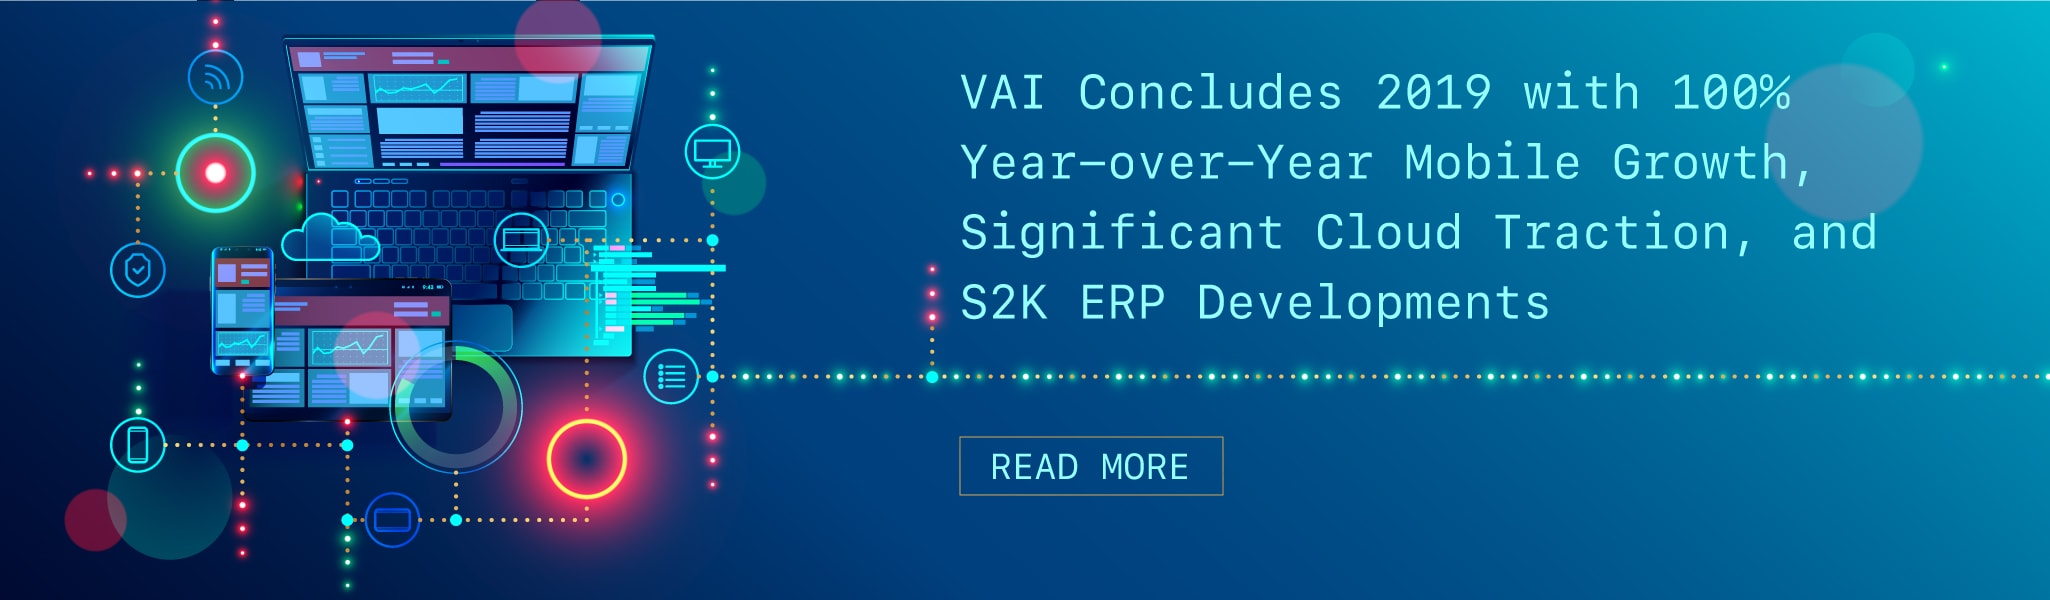 VAI Concludes 2019 with 100% Year-over-Year Mobile Growth, Significant Cloud Traction, and S2K ERP Developments